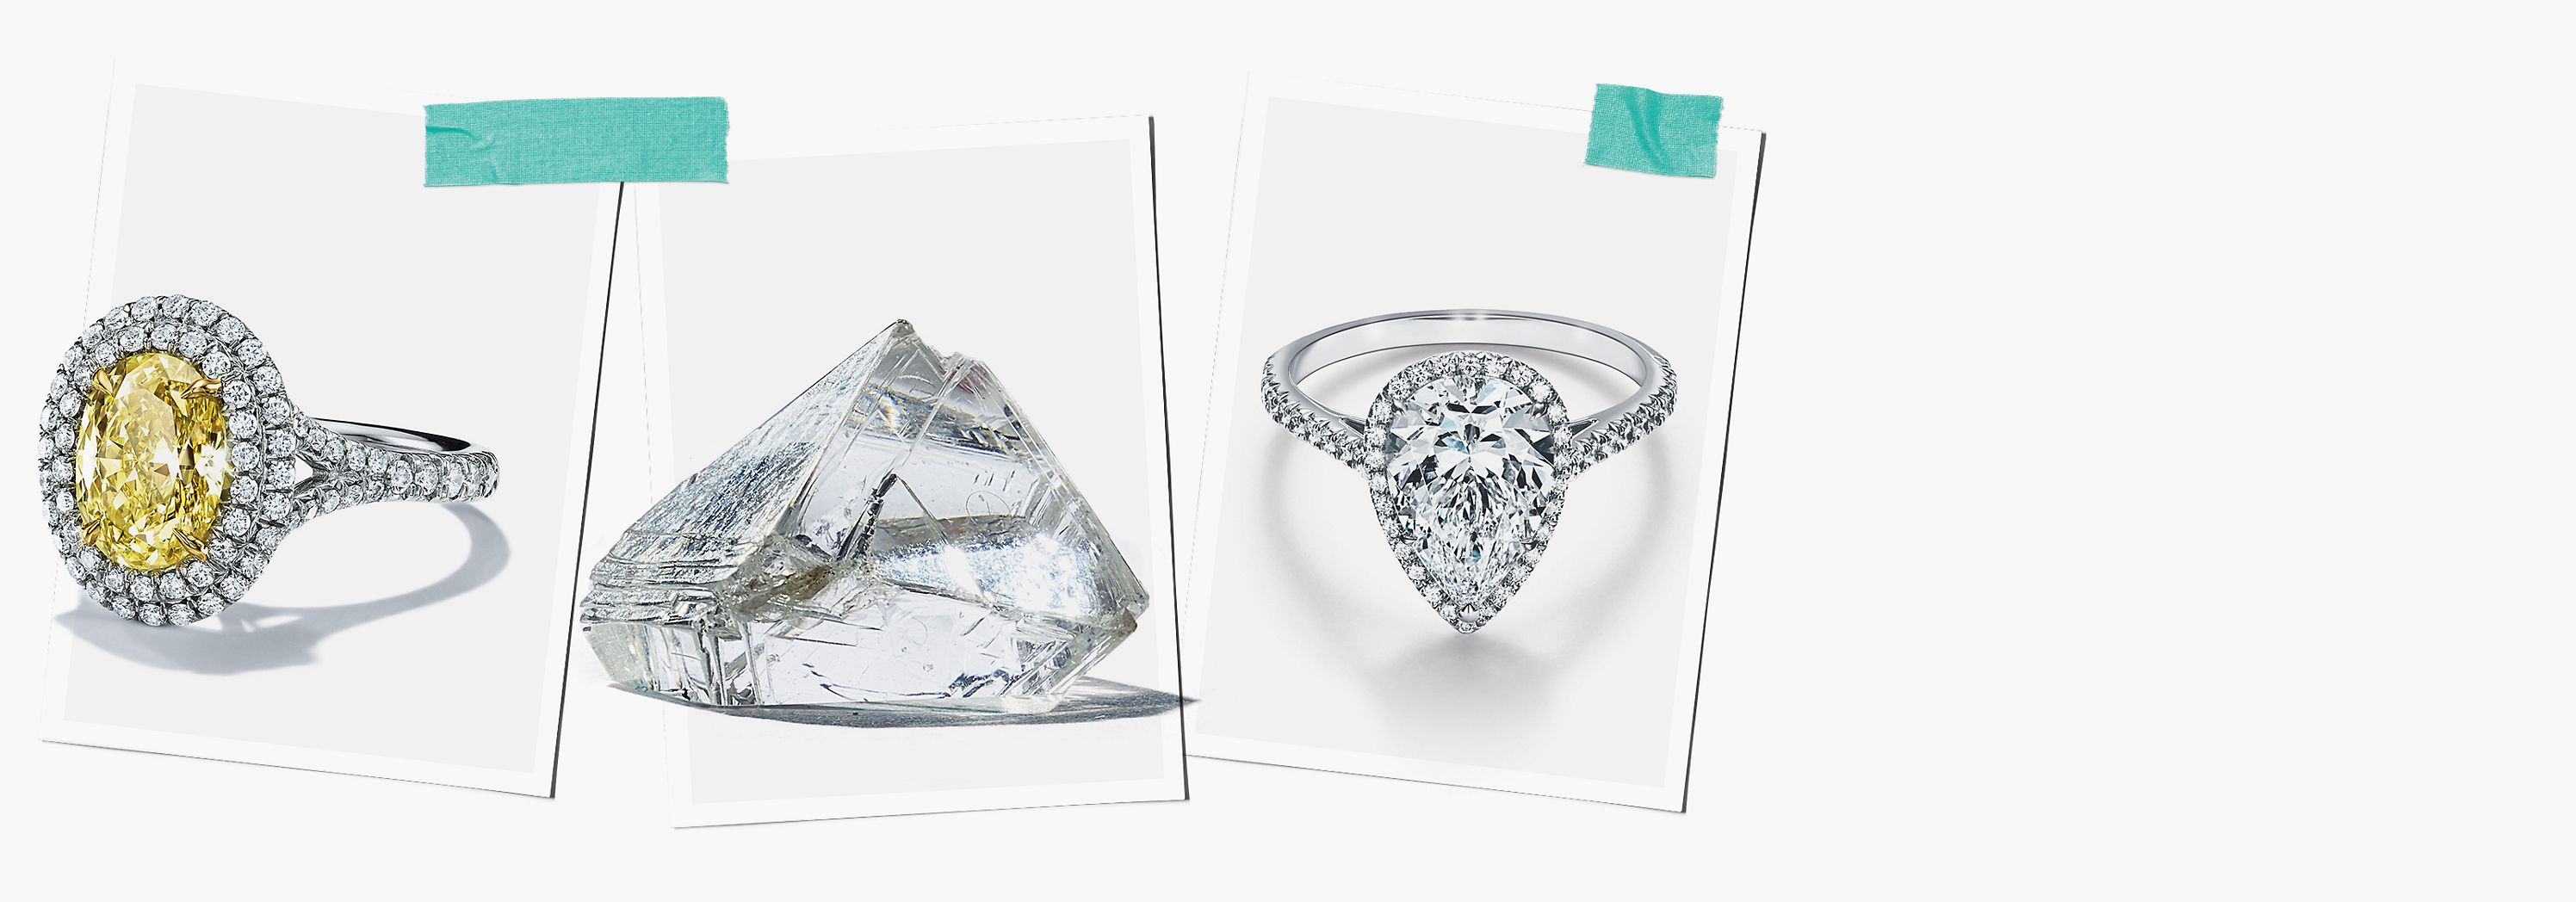 Which Diamond Shapes are the Largest?